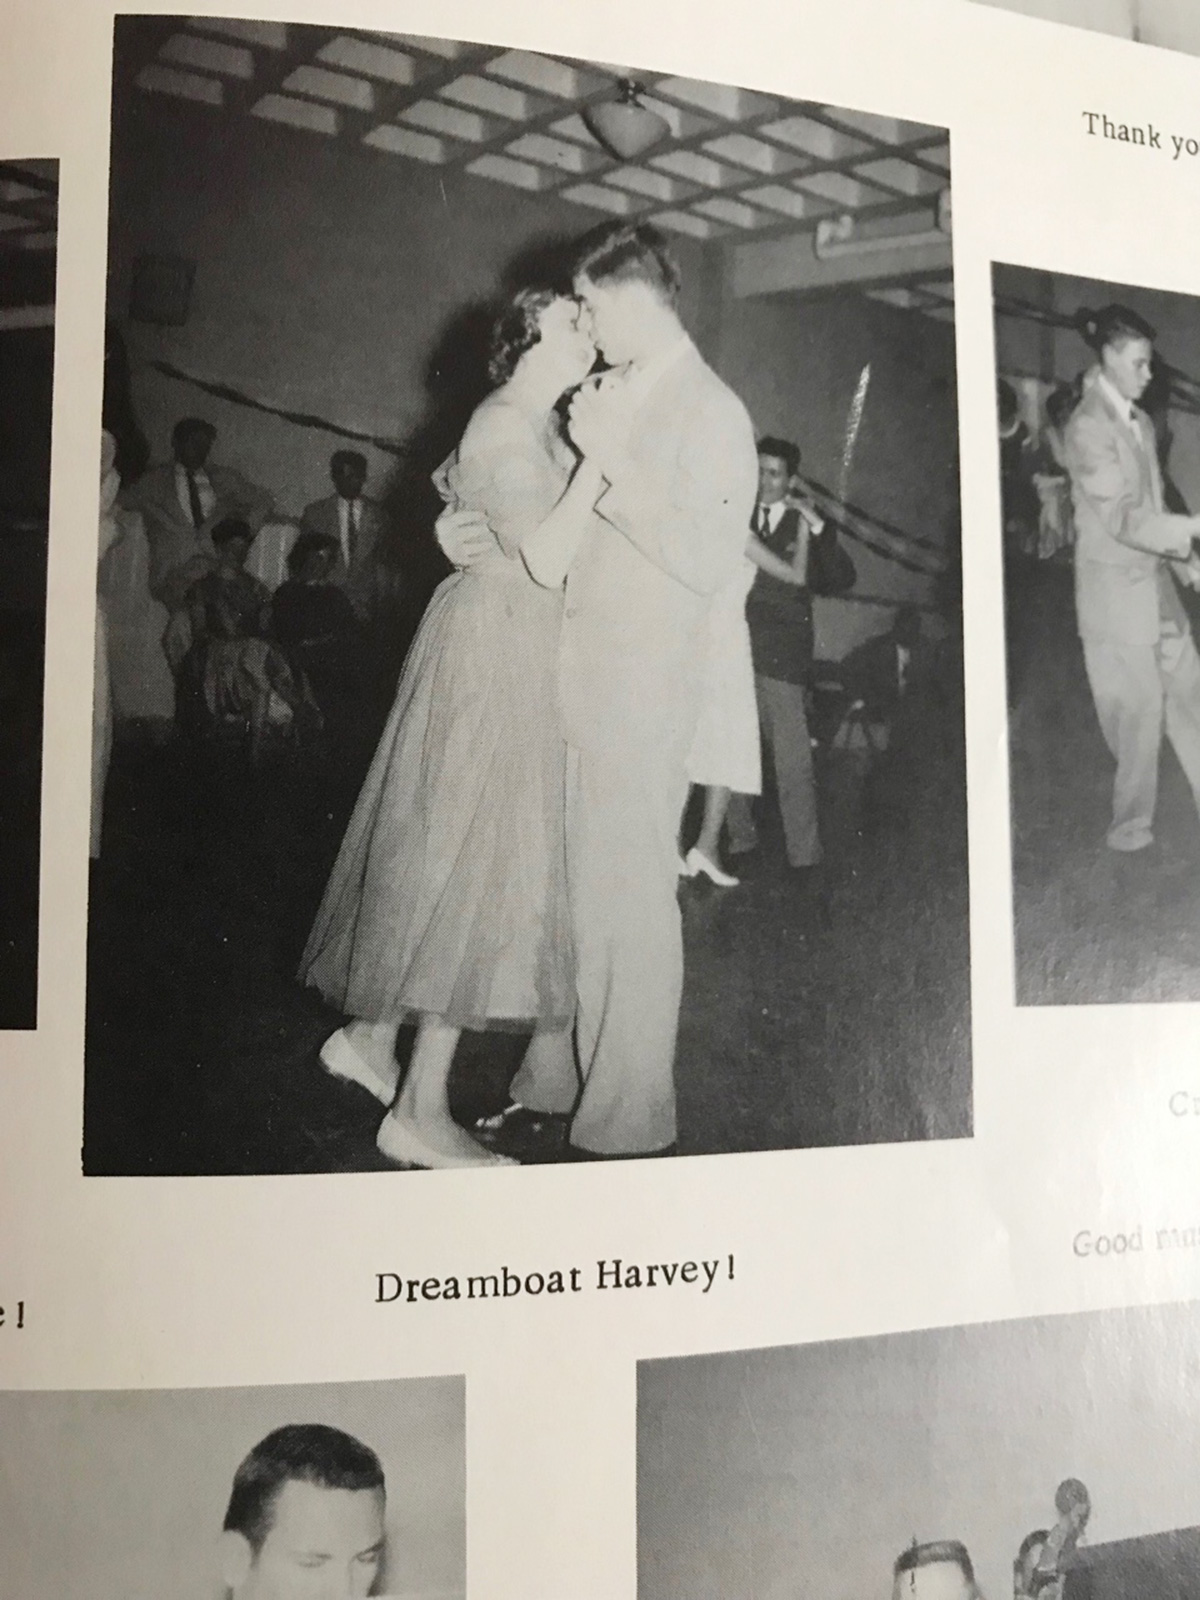 High School Sweethearts Wed After 63 Years Apart